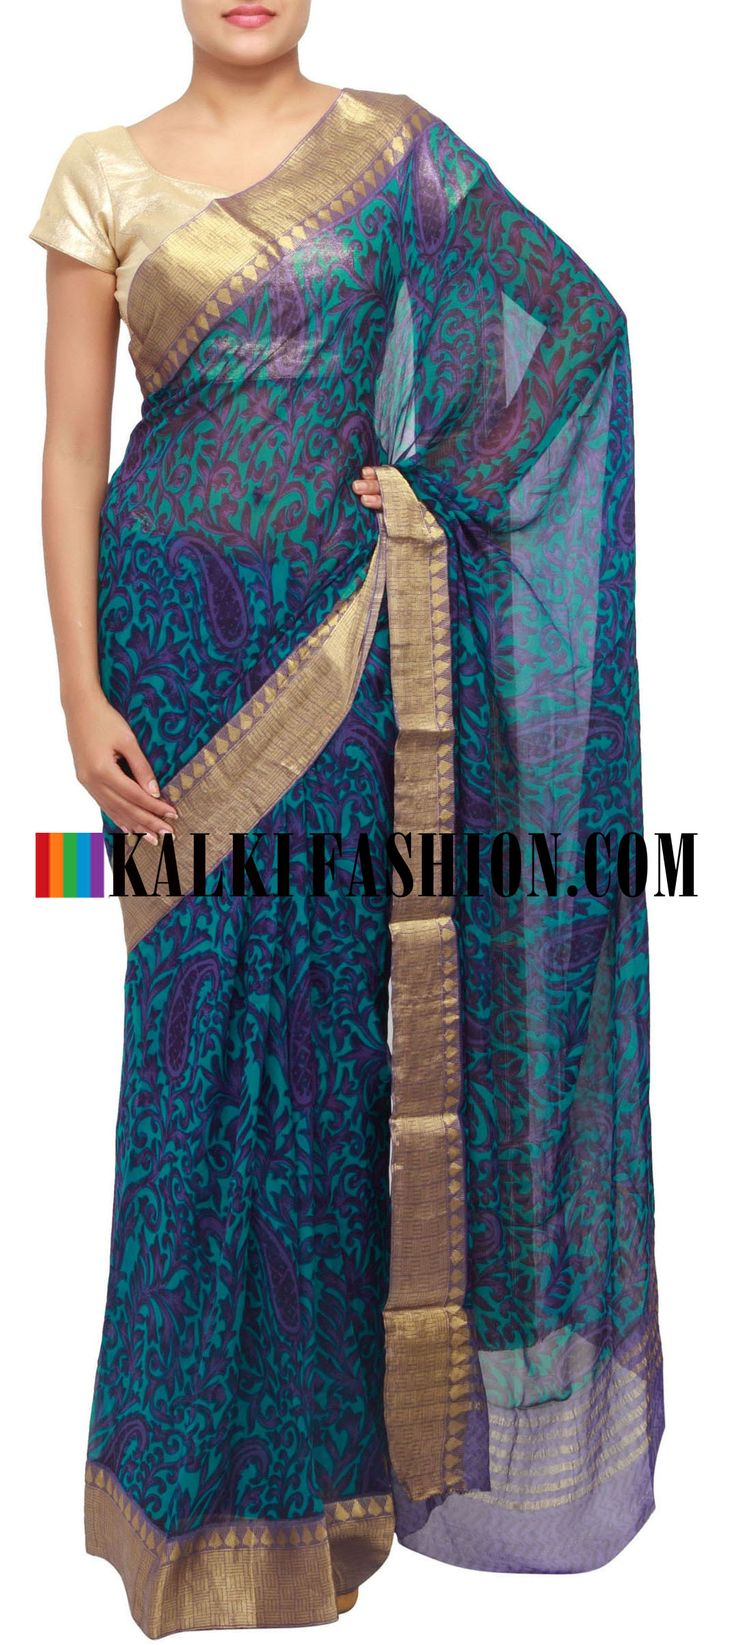 Get this beautiful saree here: http://www.kalkifashion.com/teal-and-purple-printed-saree-with-banarasi-border-only-on-kalki.html Free shipping worldwide.